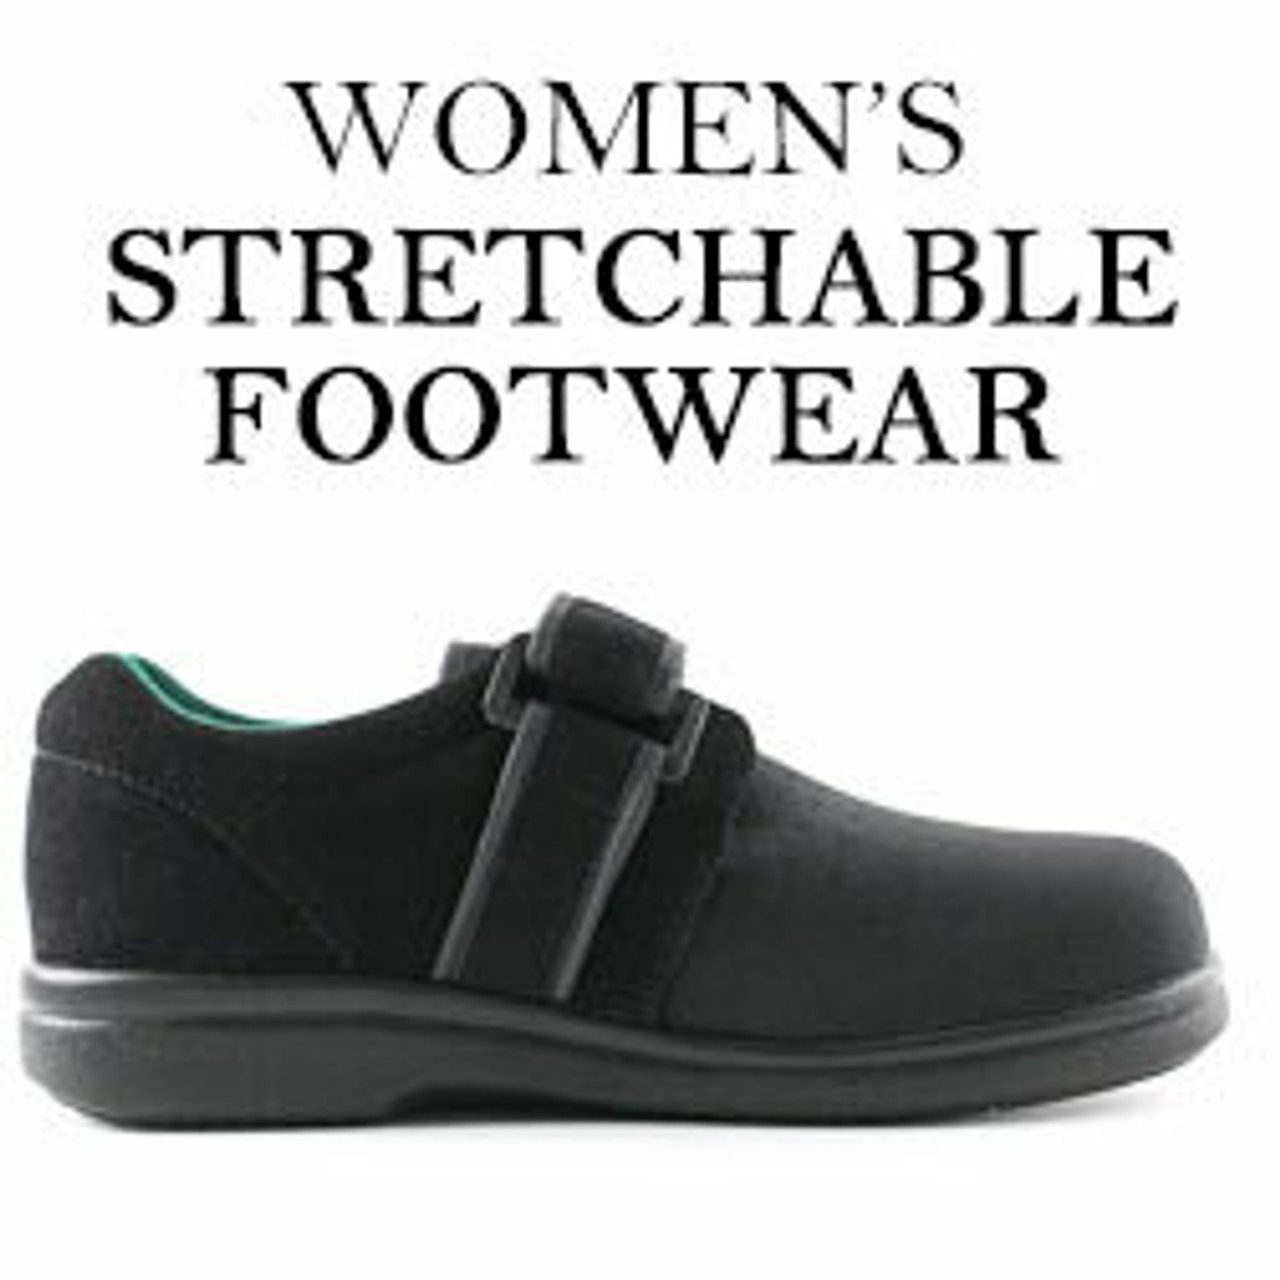 Stretchy Shoes For Women | Stretchable Shoes